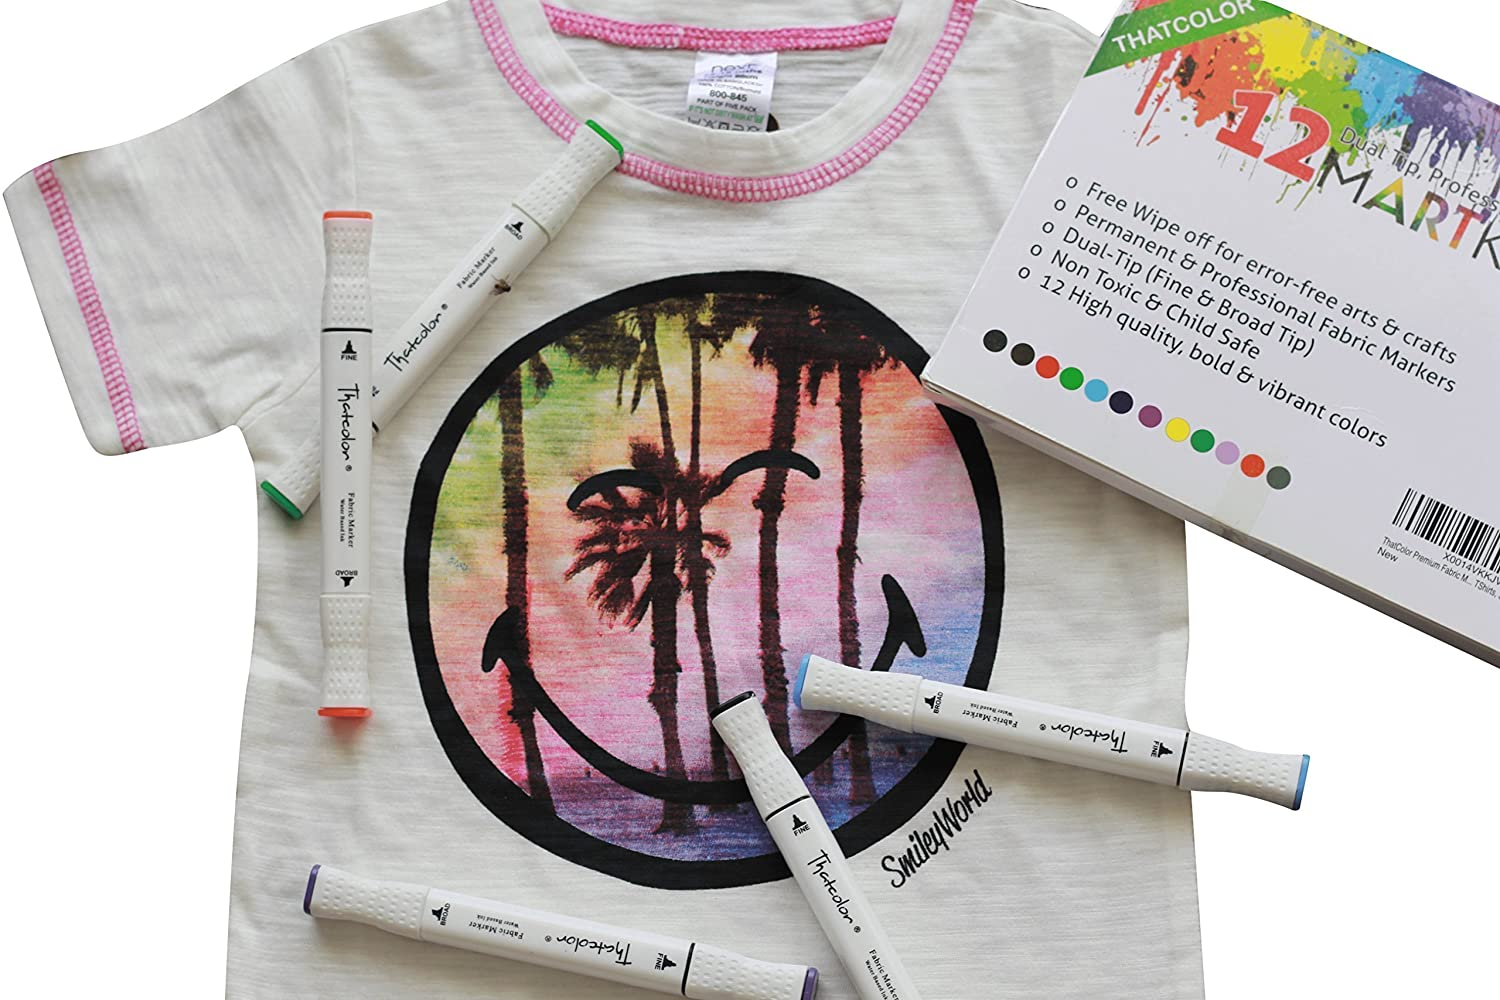 Non Toxic Disappearing Ink Pen Thatcolor Fabric Markers All-in-One Set: 12 Dual Tip Permanent Graffiti Coloring Pens Iron Transfer Sticker